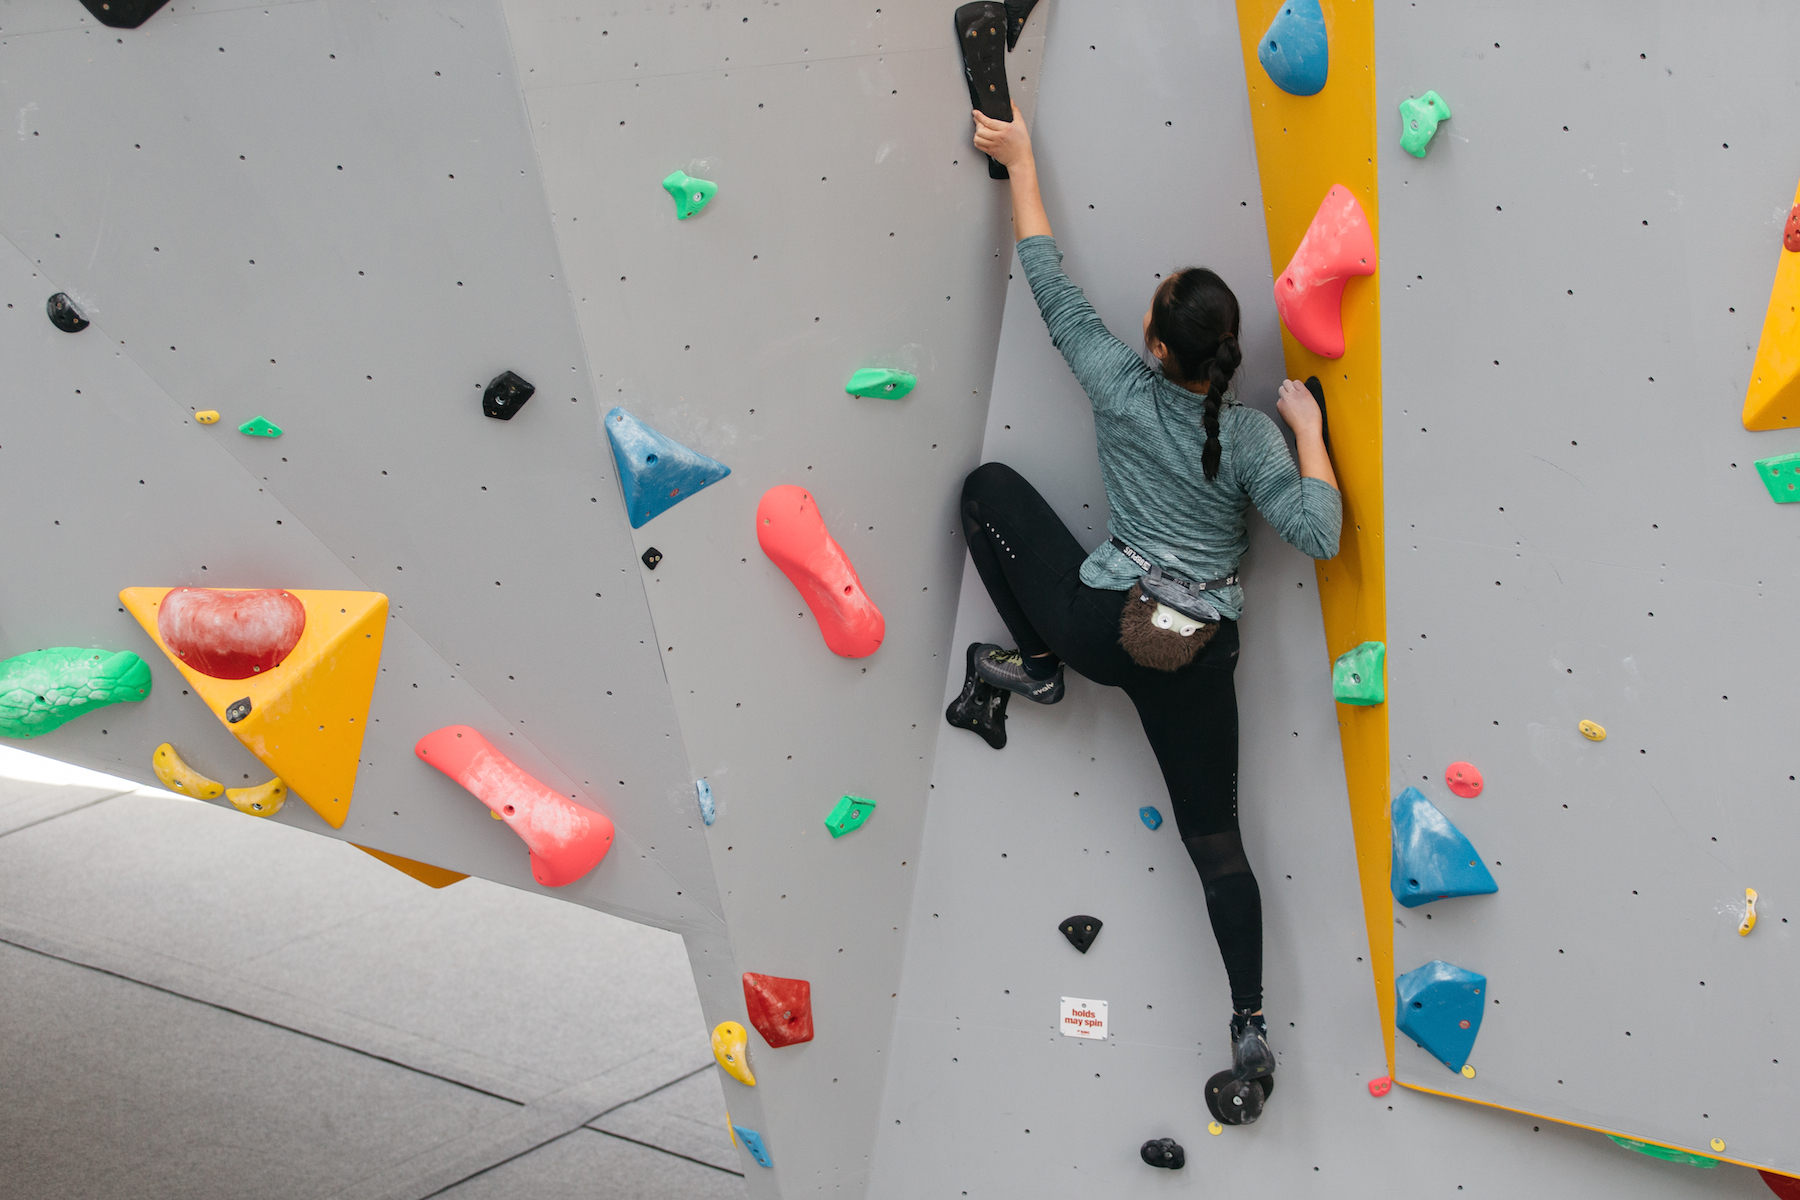 Lady climbing on black holds with a high left foot